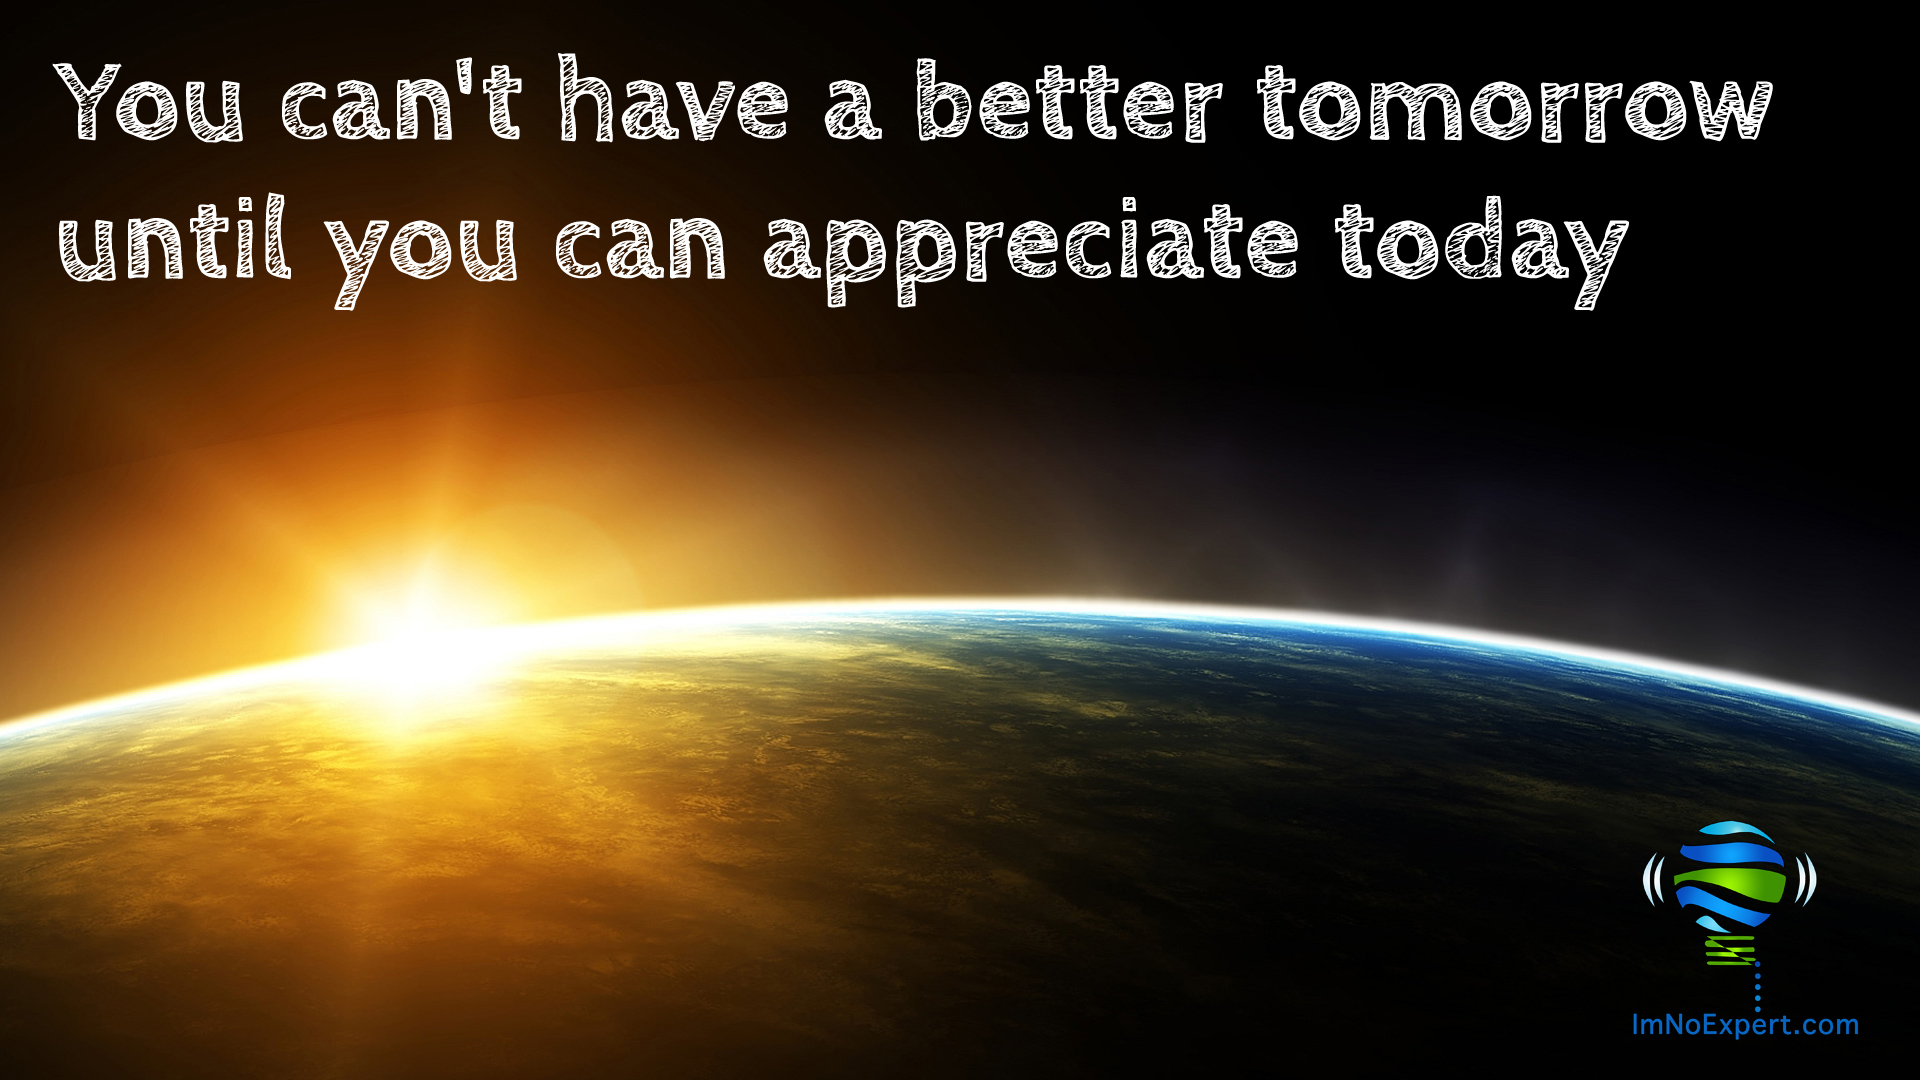 You can't have a better tomorrow unless you are accepting today